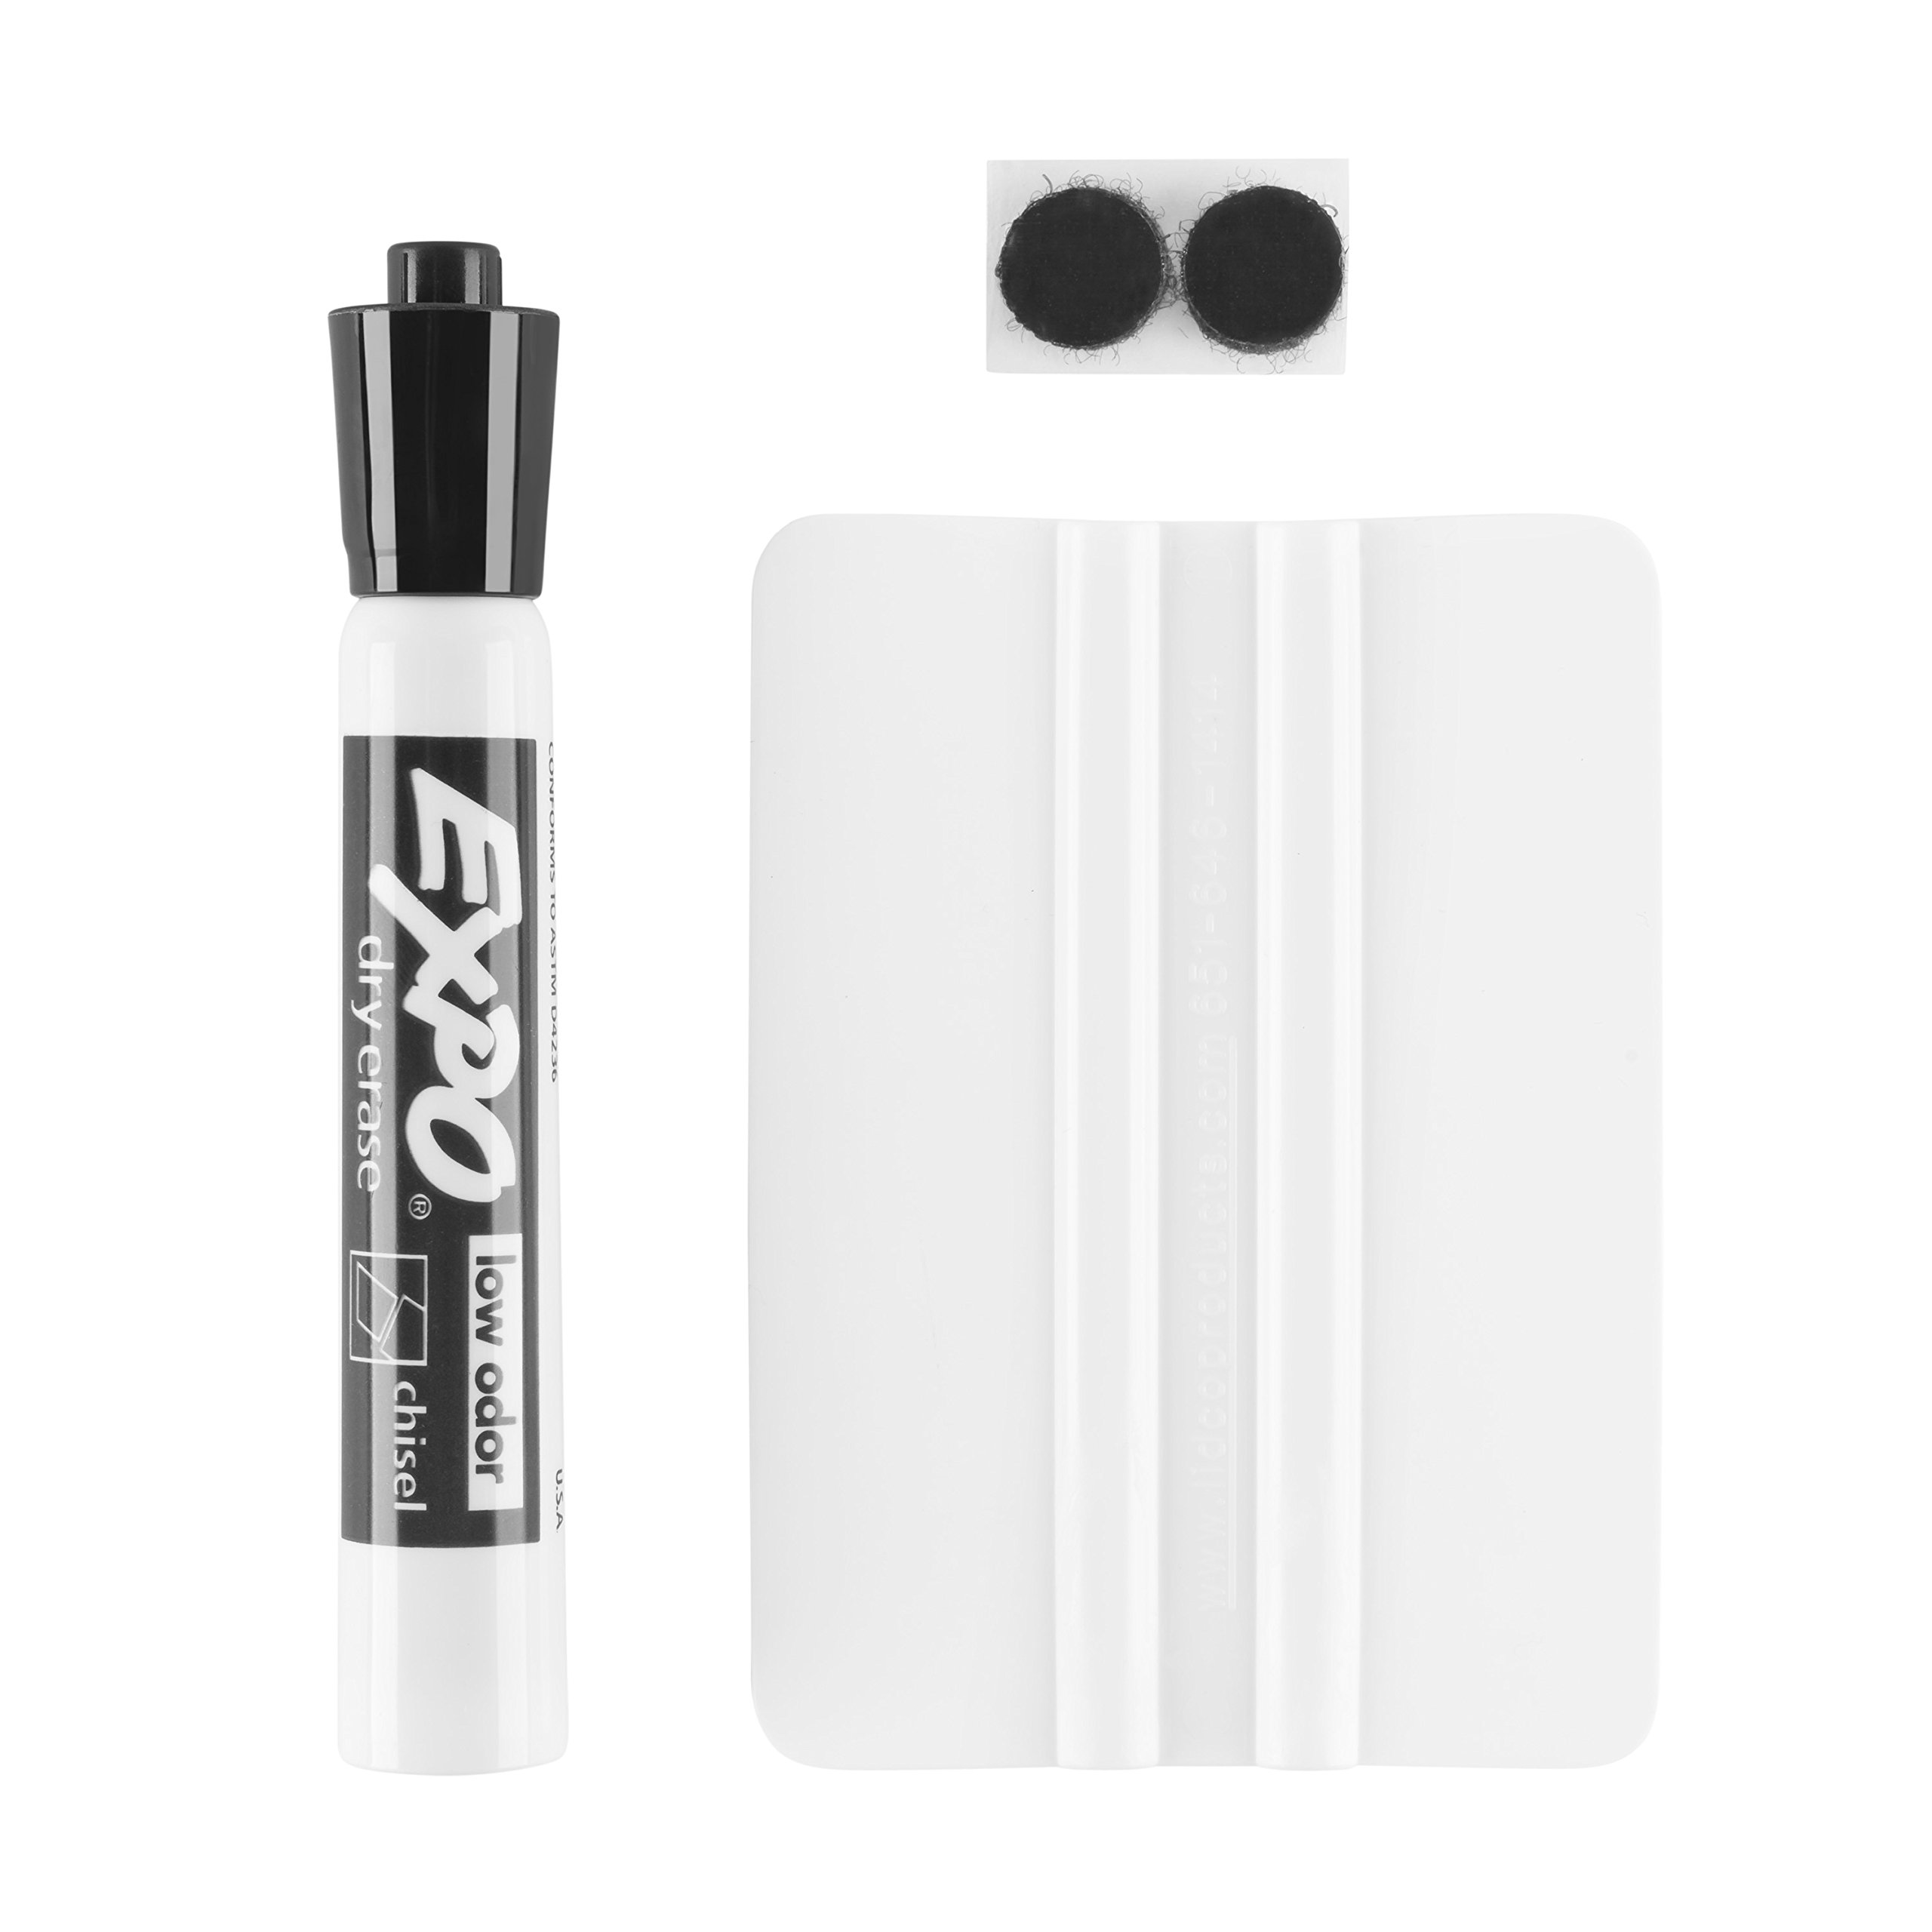 Think Board Premium Whiteboard Film, Peel and Stick, X-Large, White by Think Board (Image #3)